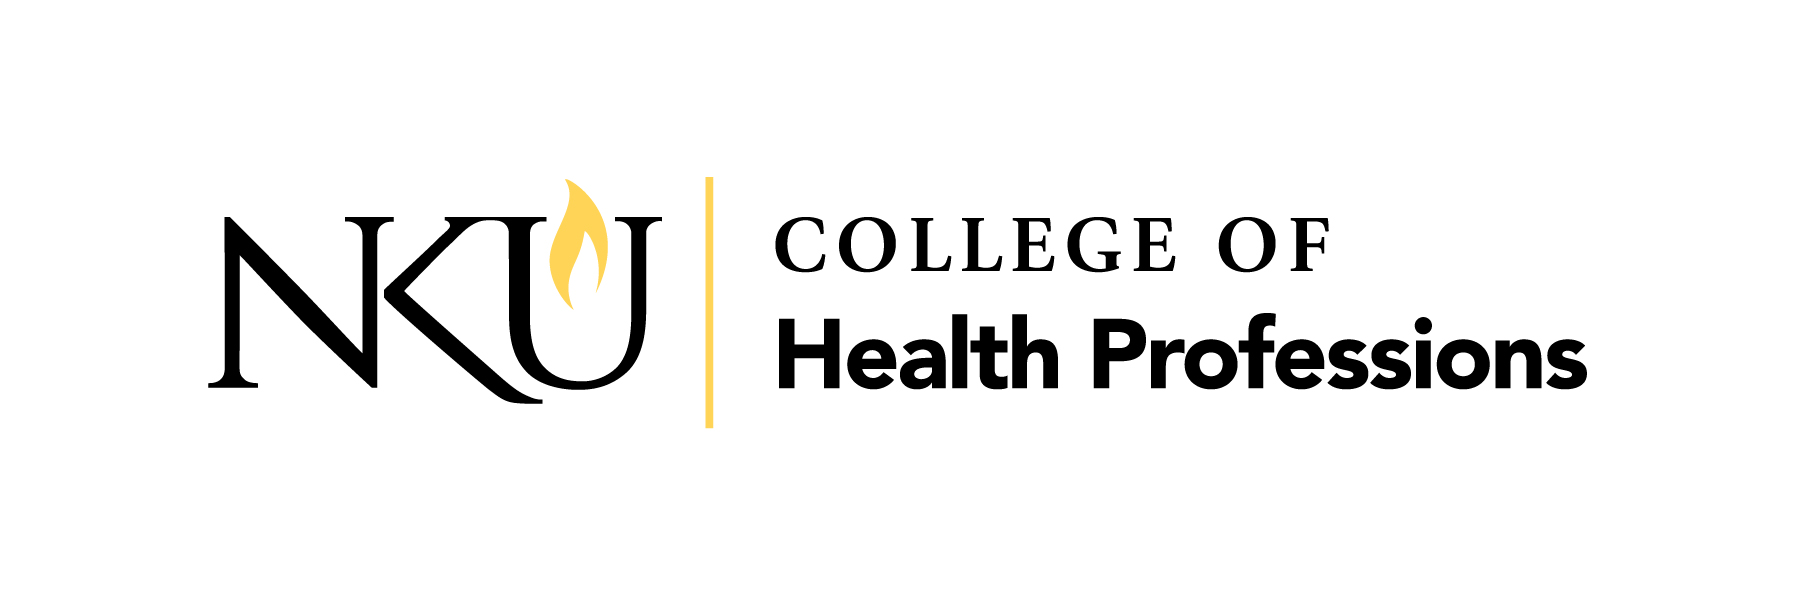 NKU_HealthCollege_lockup_color